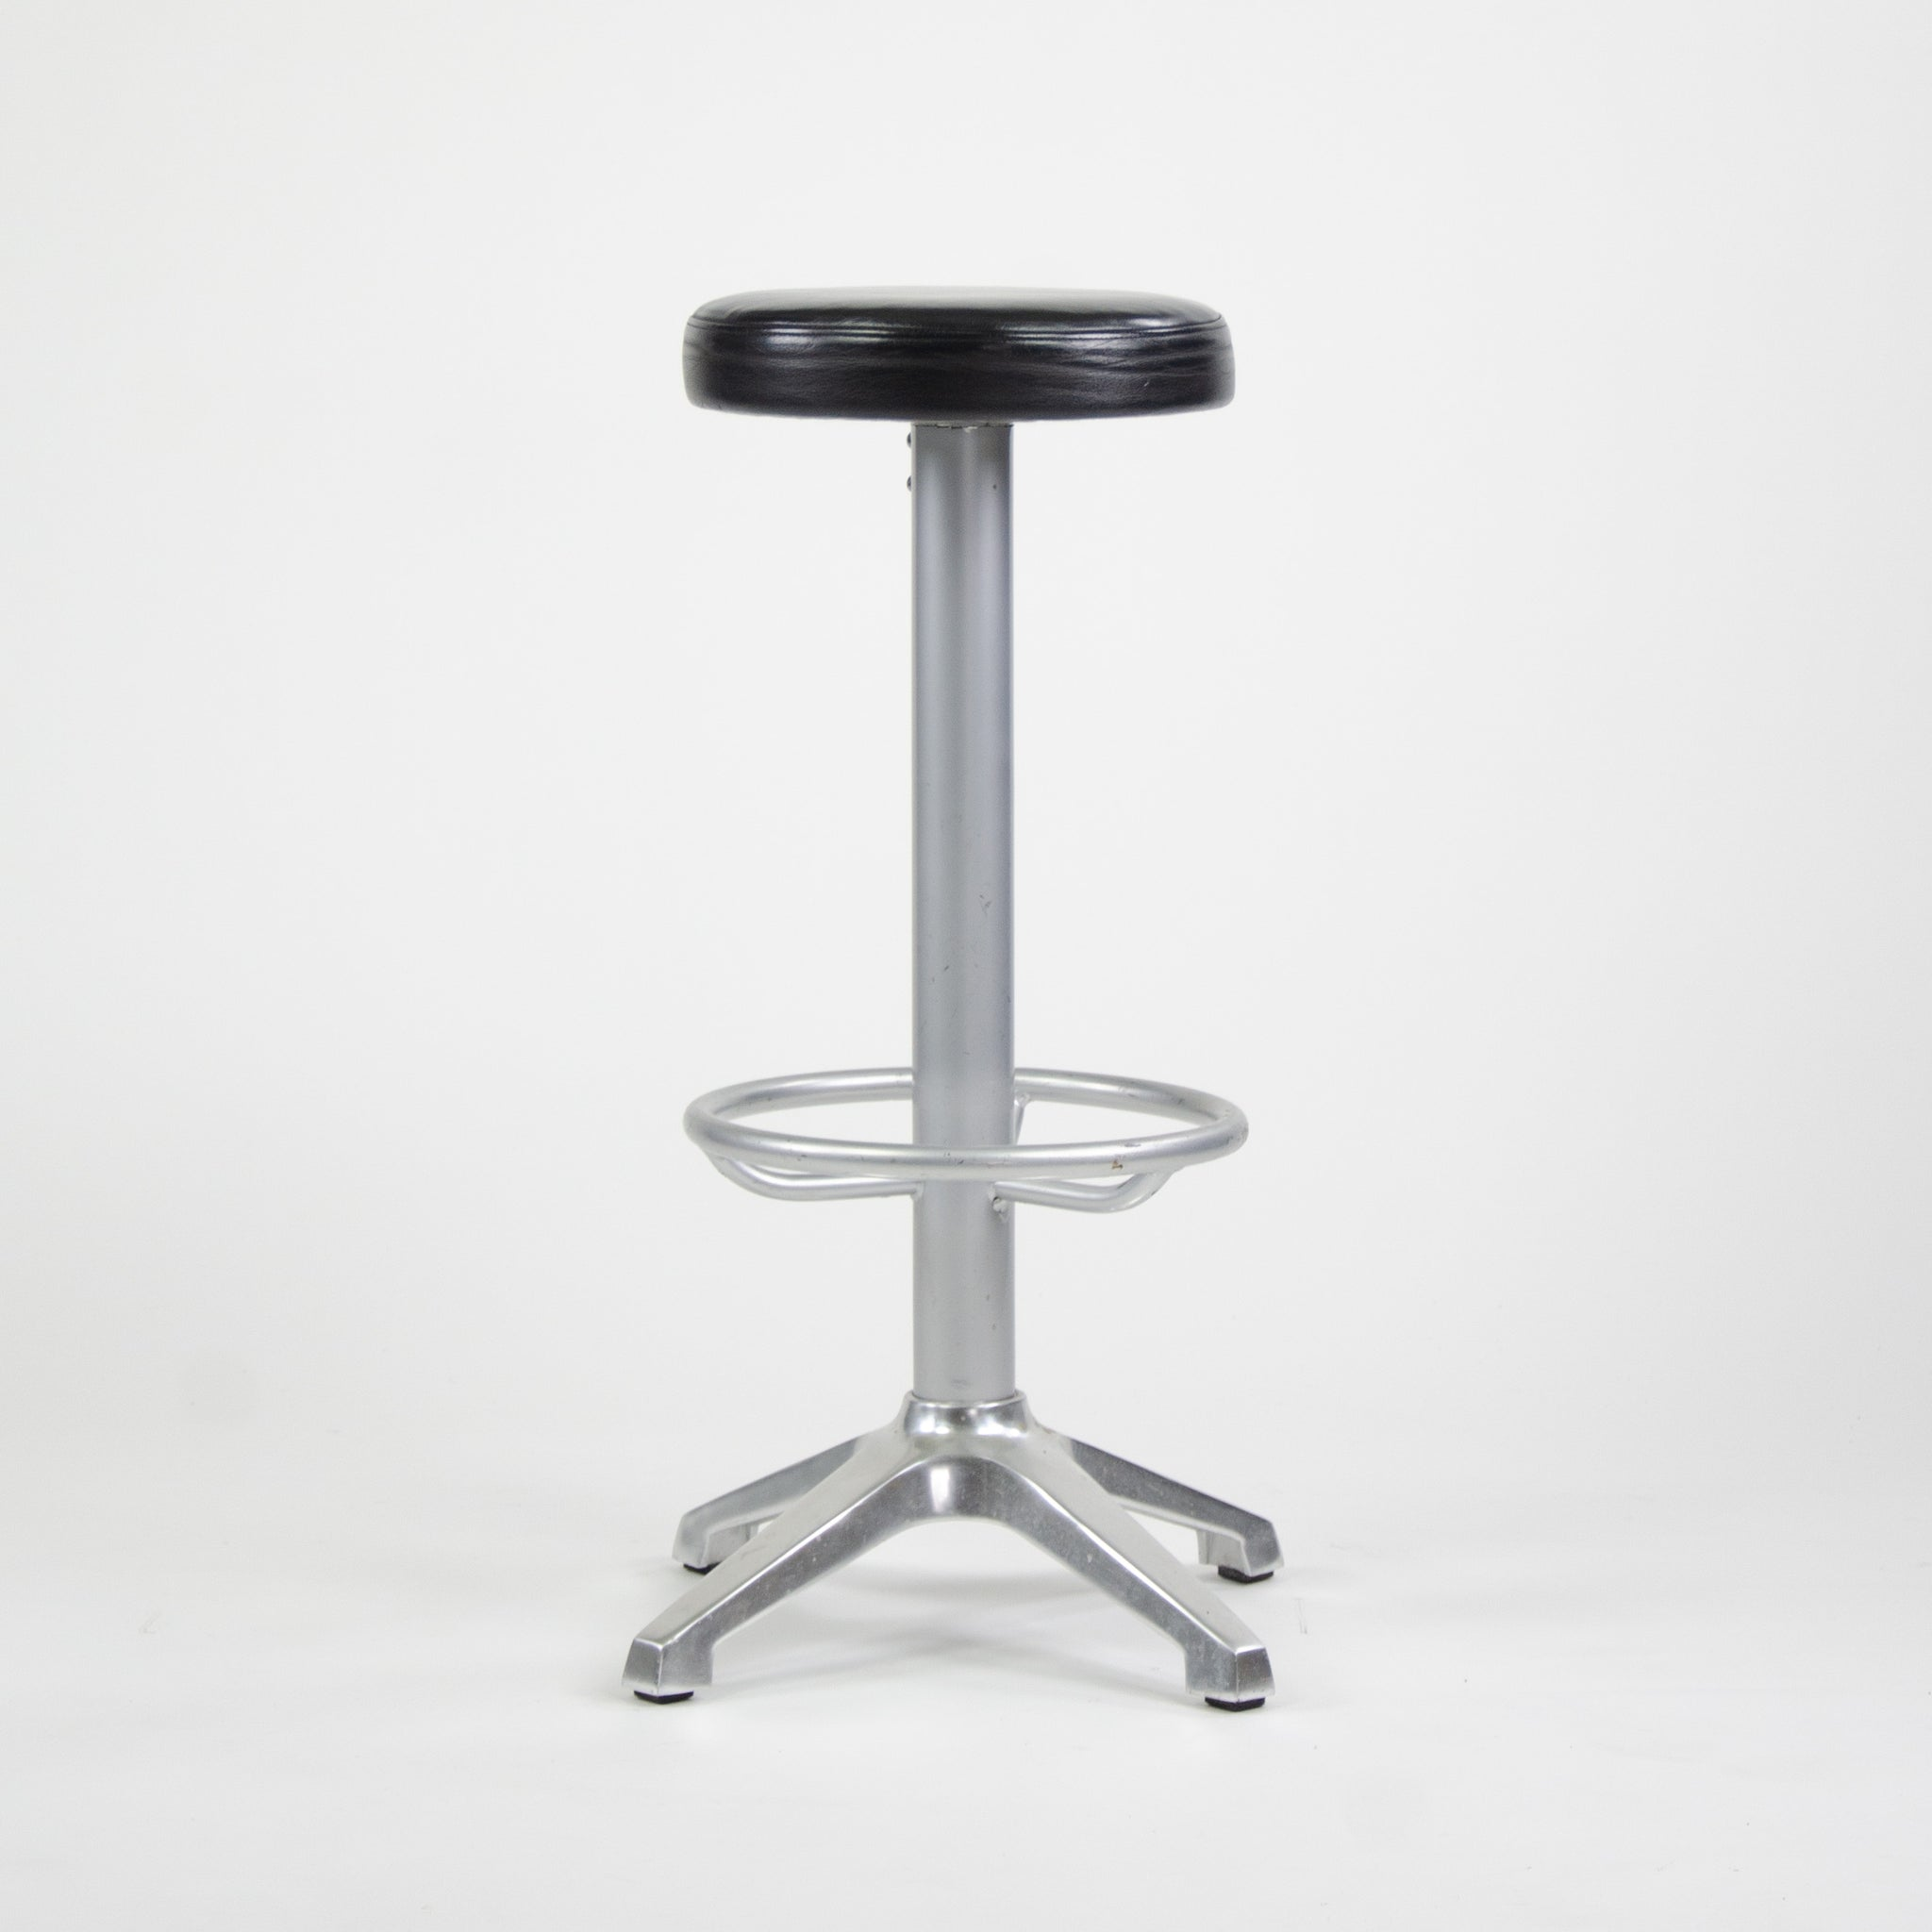 SOLD AMAT-3 Cooper Bar Counter Leather Stools Spain 4x Available